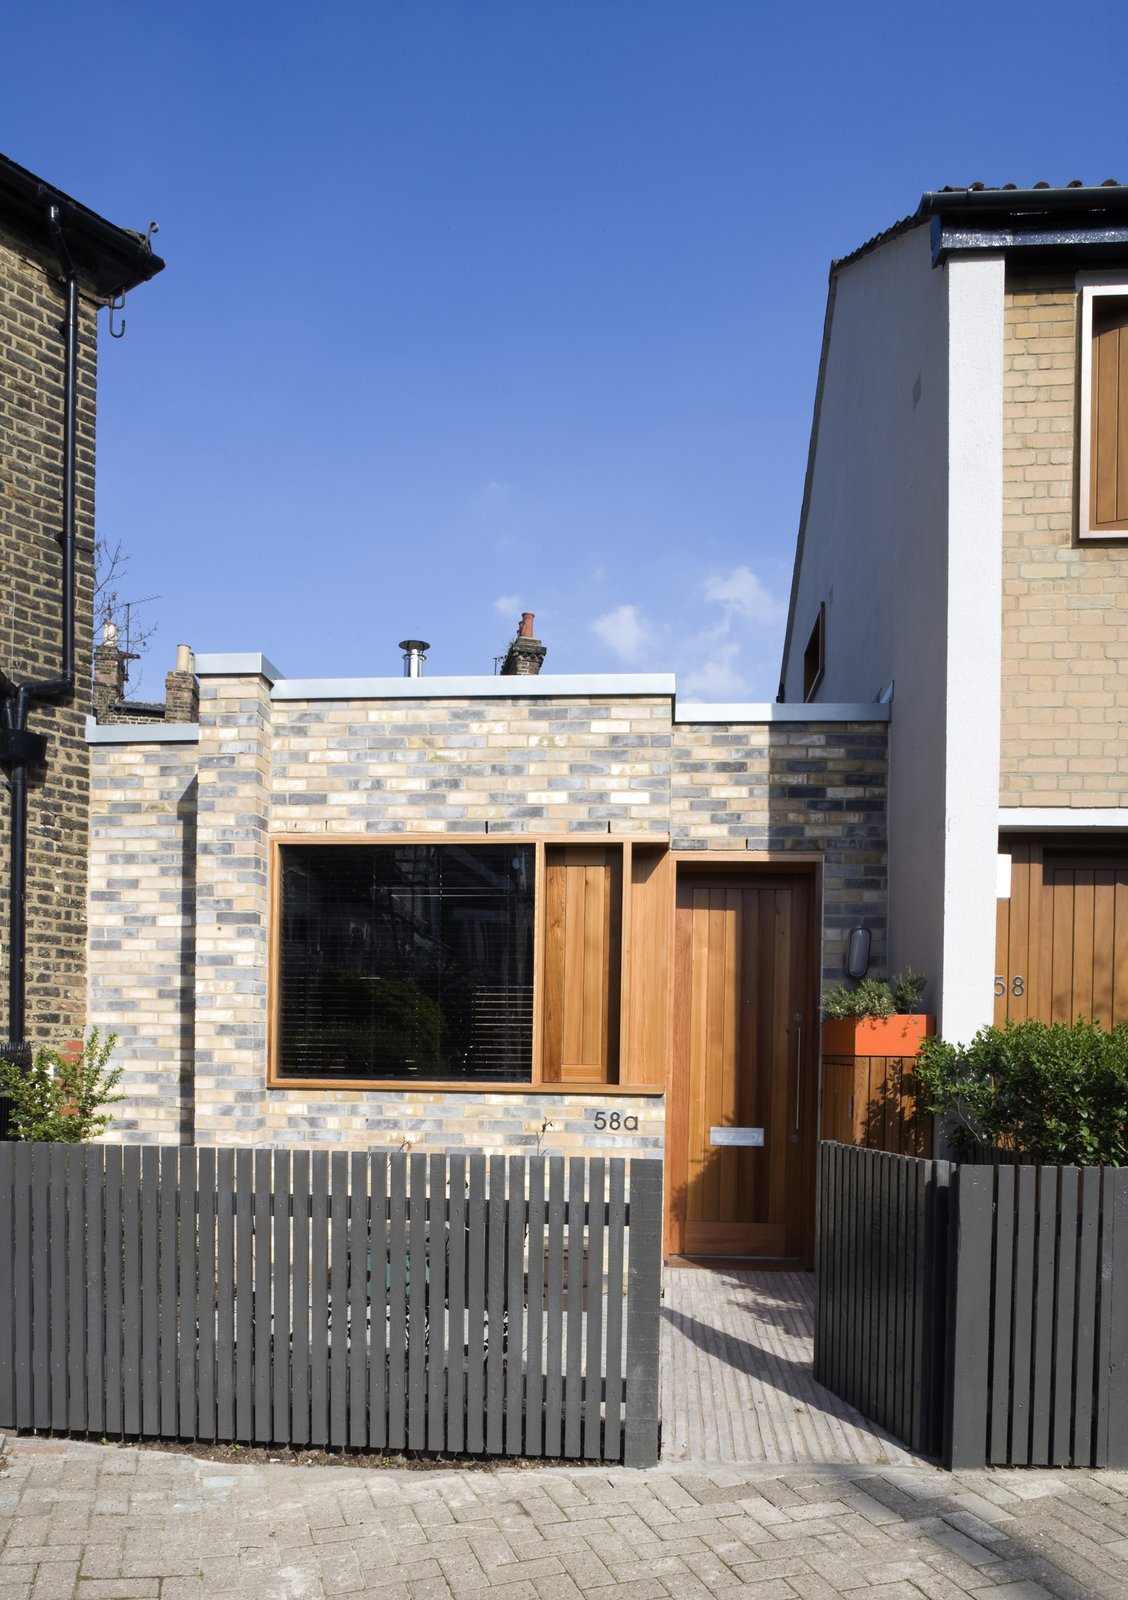 """""""We have described the house as an urban cabin and this captures the essential character we were seeking to achieve,"""" says architect Charles Thomson. """"Because the plan is so tight, it was critical that every part was considered carefully. But we also wanted spaces that were simple and flexible to accommodate the typical range of family activities.""""  Islington Residence by Kelly Dawson"""